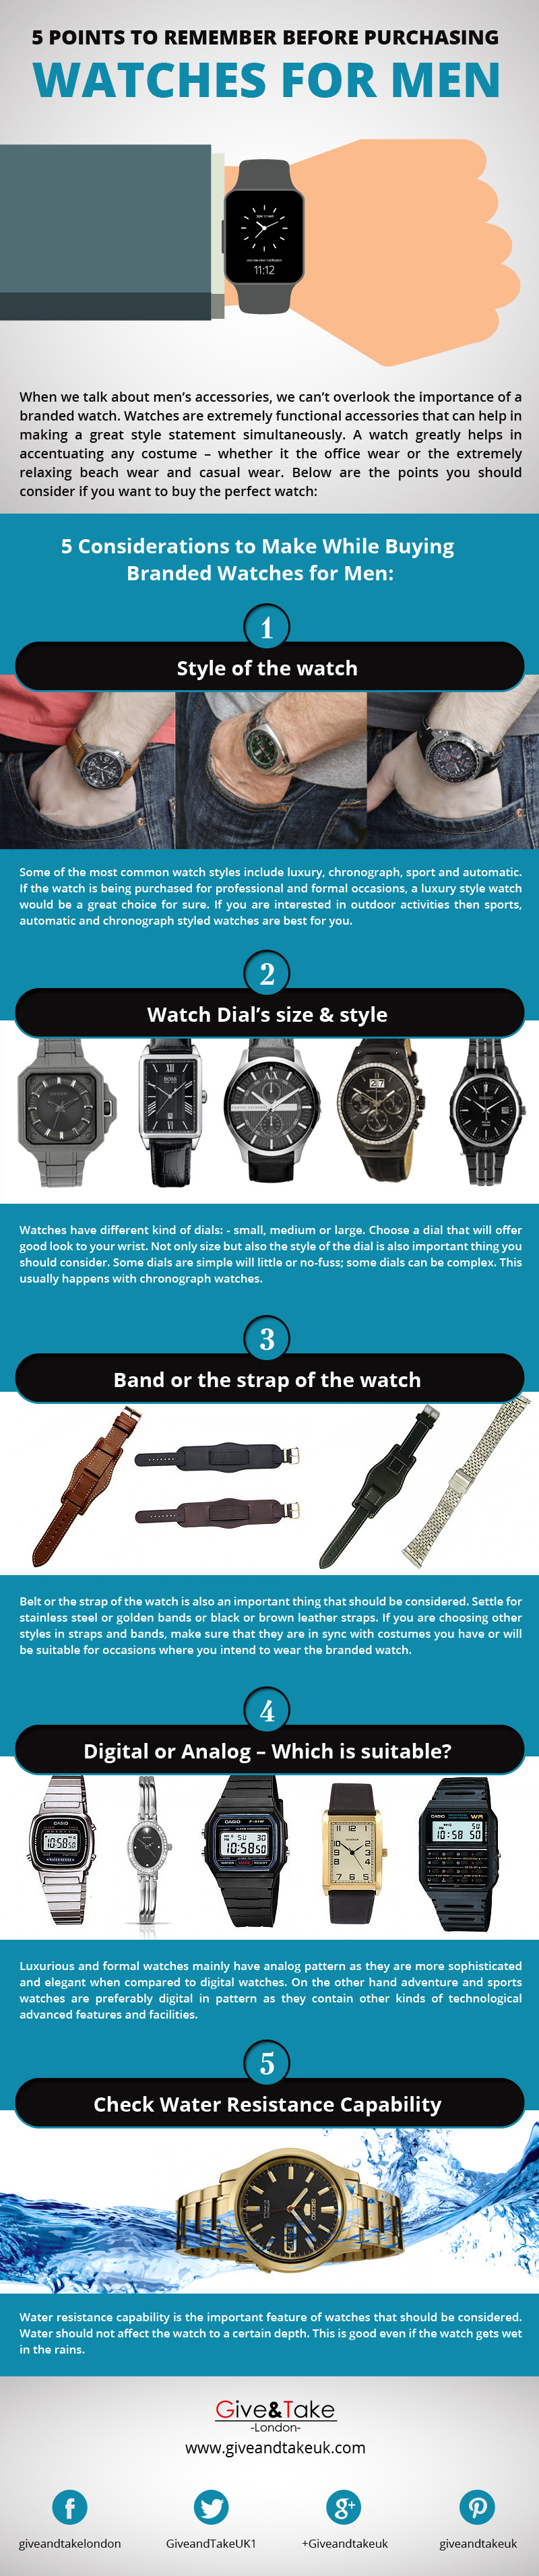 Purchasing Watches for Men